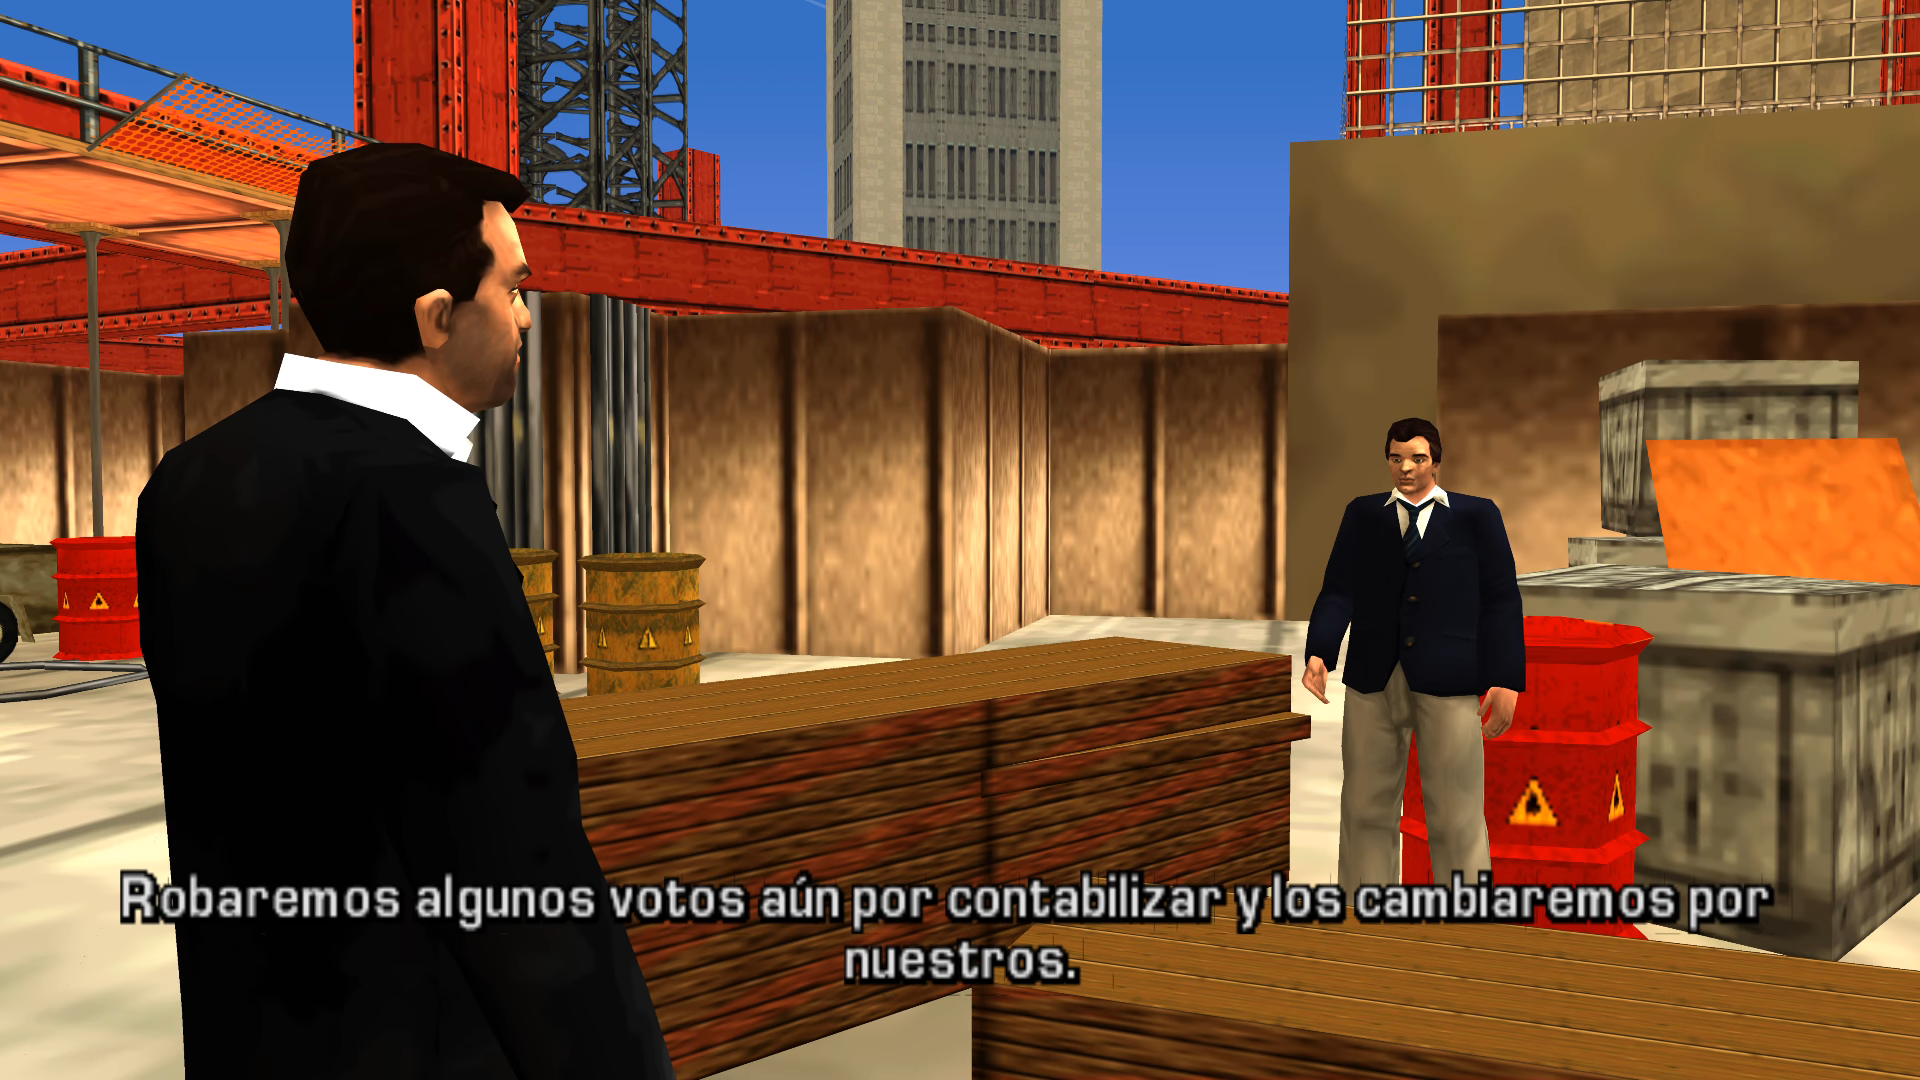 Archivo:Counter2.png